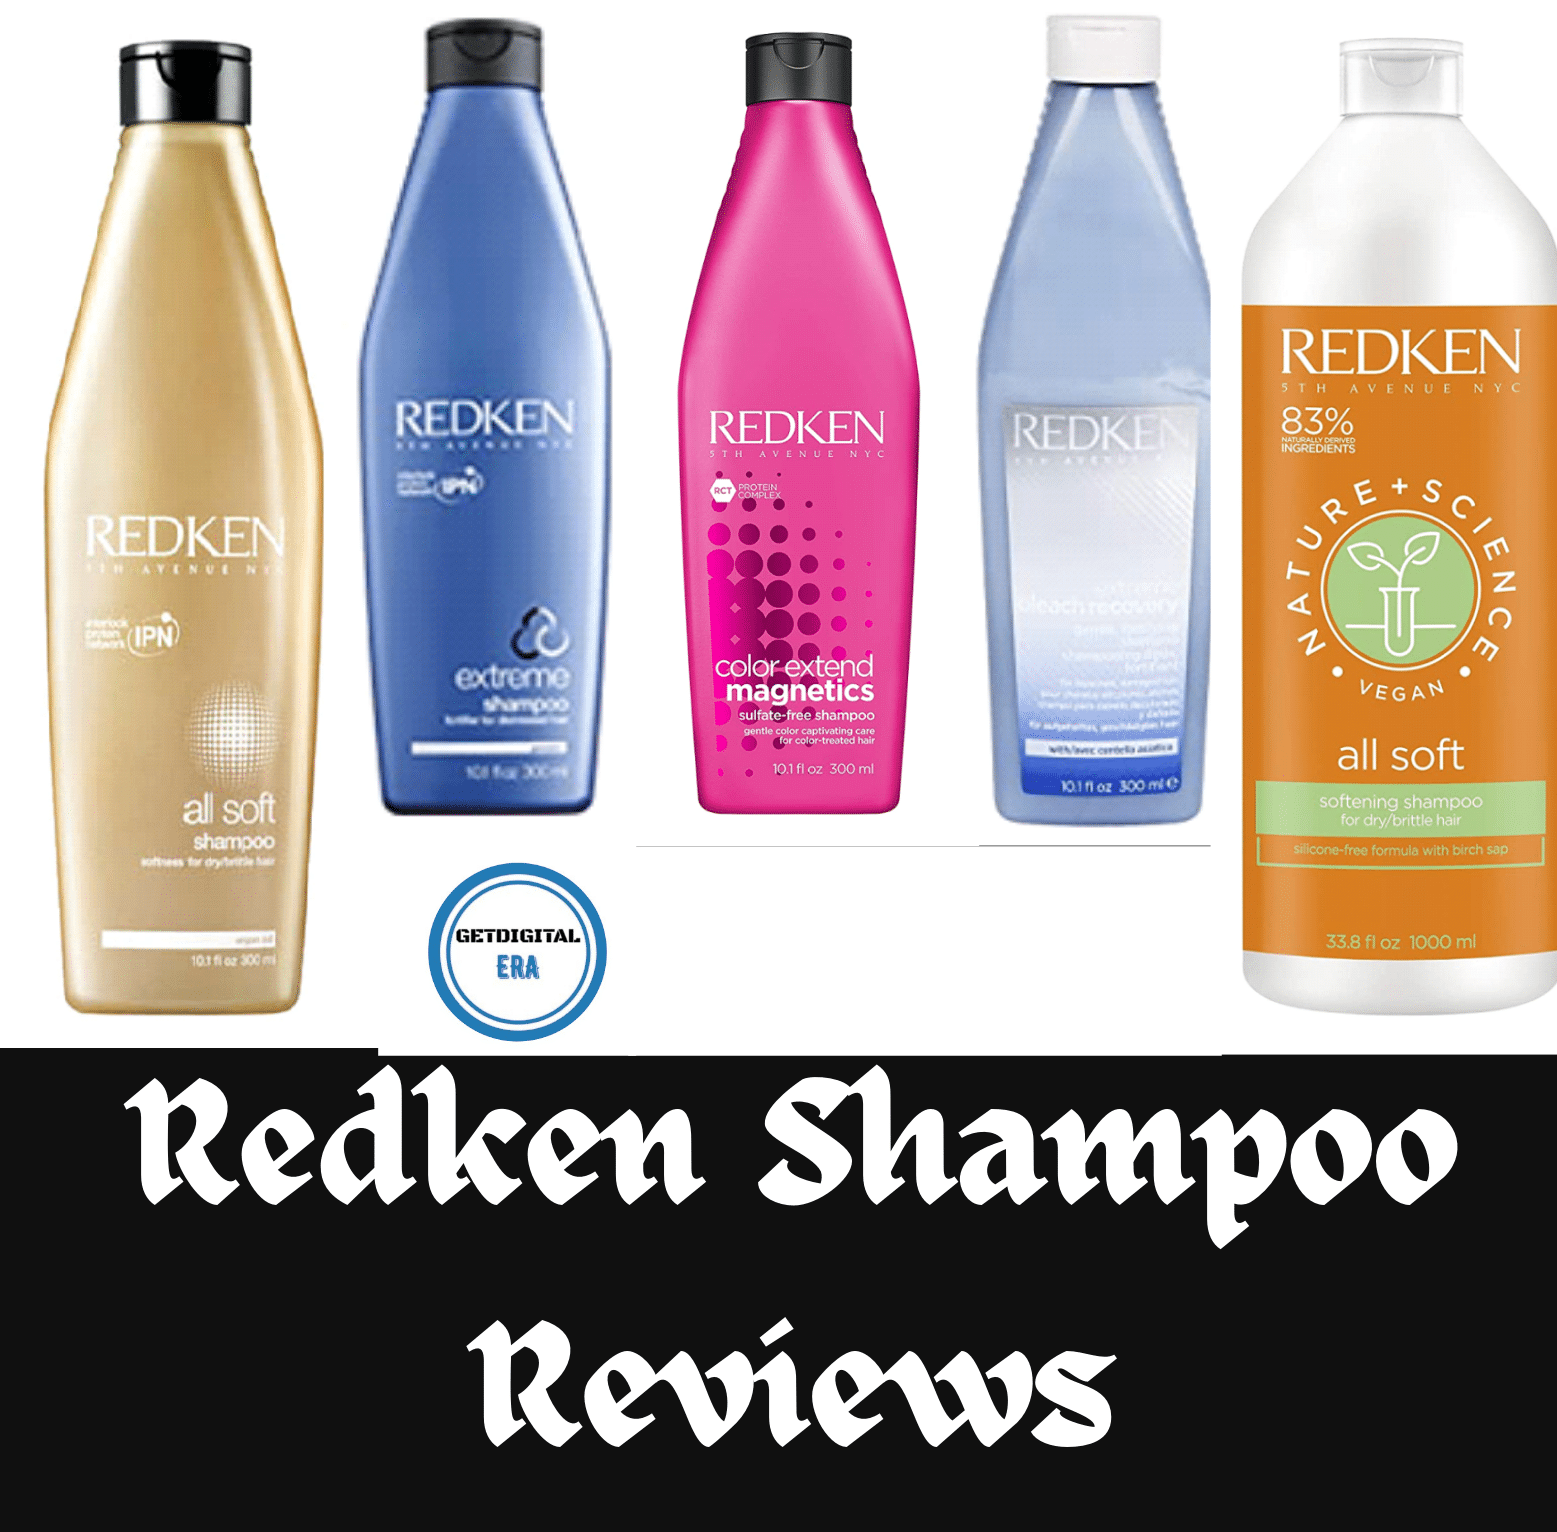 Redken Shampoo Reviews